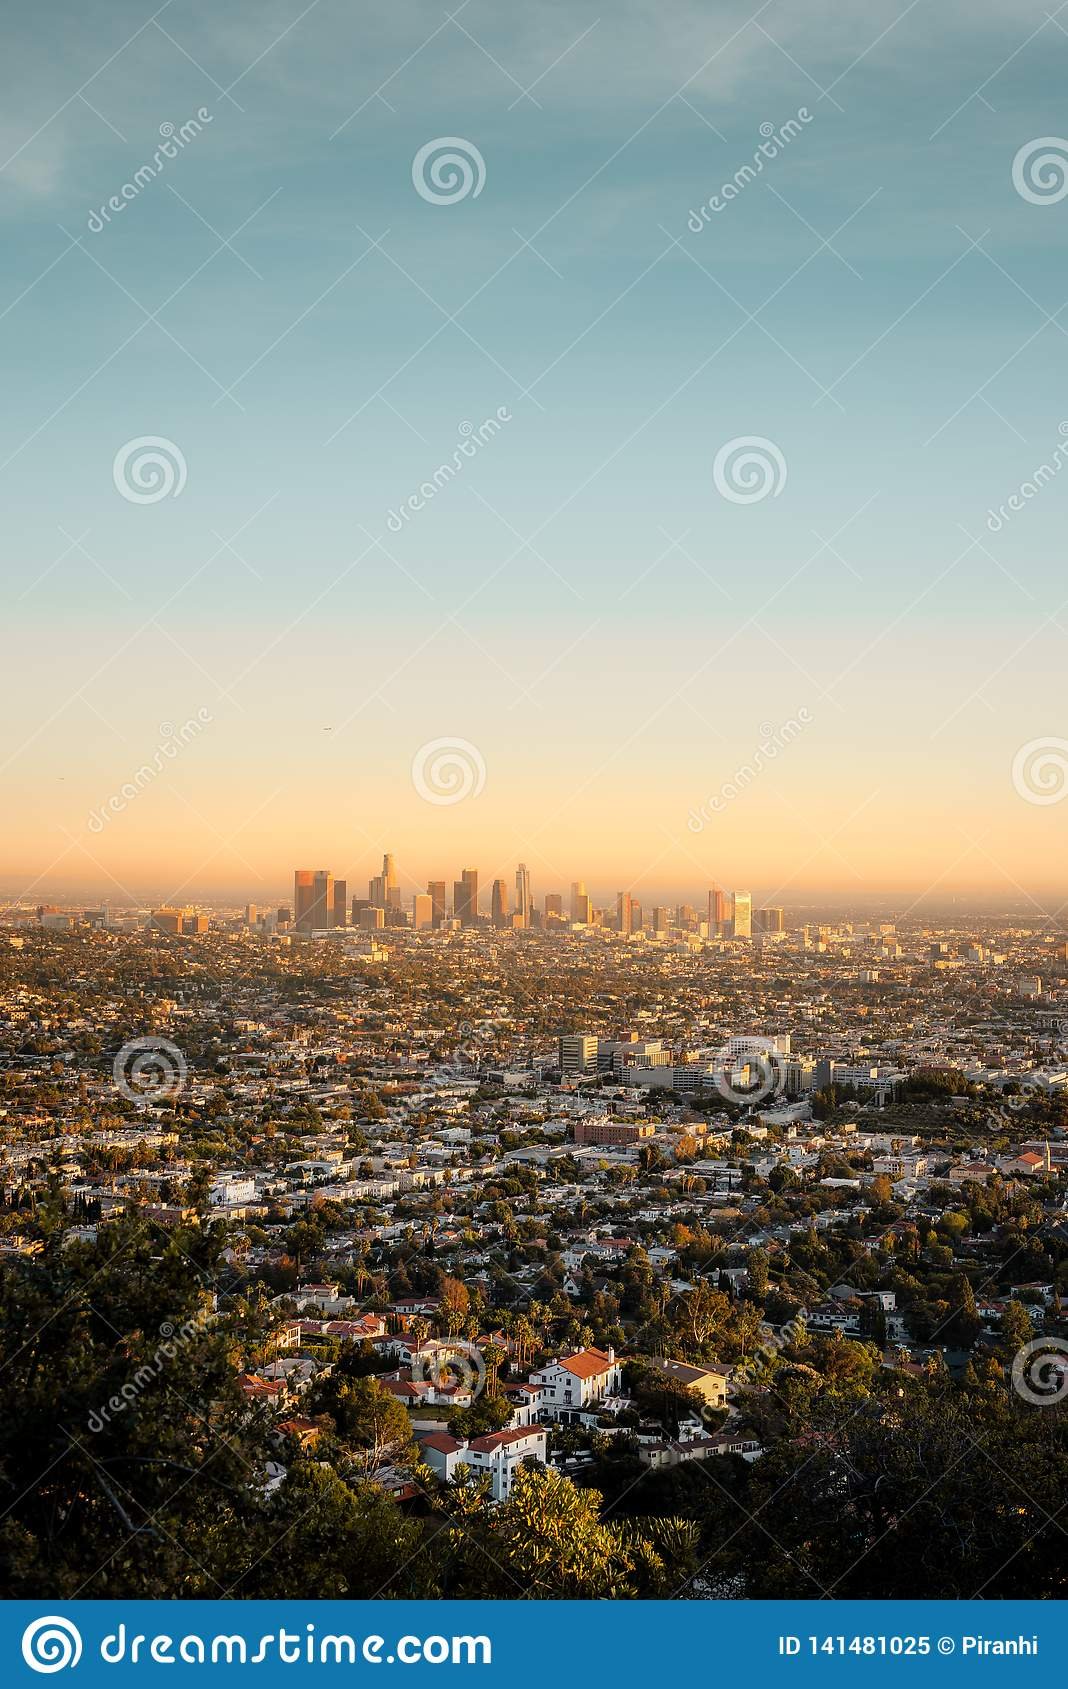 The LA vista taken from Griffith Observatory at Sunset